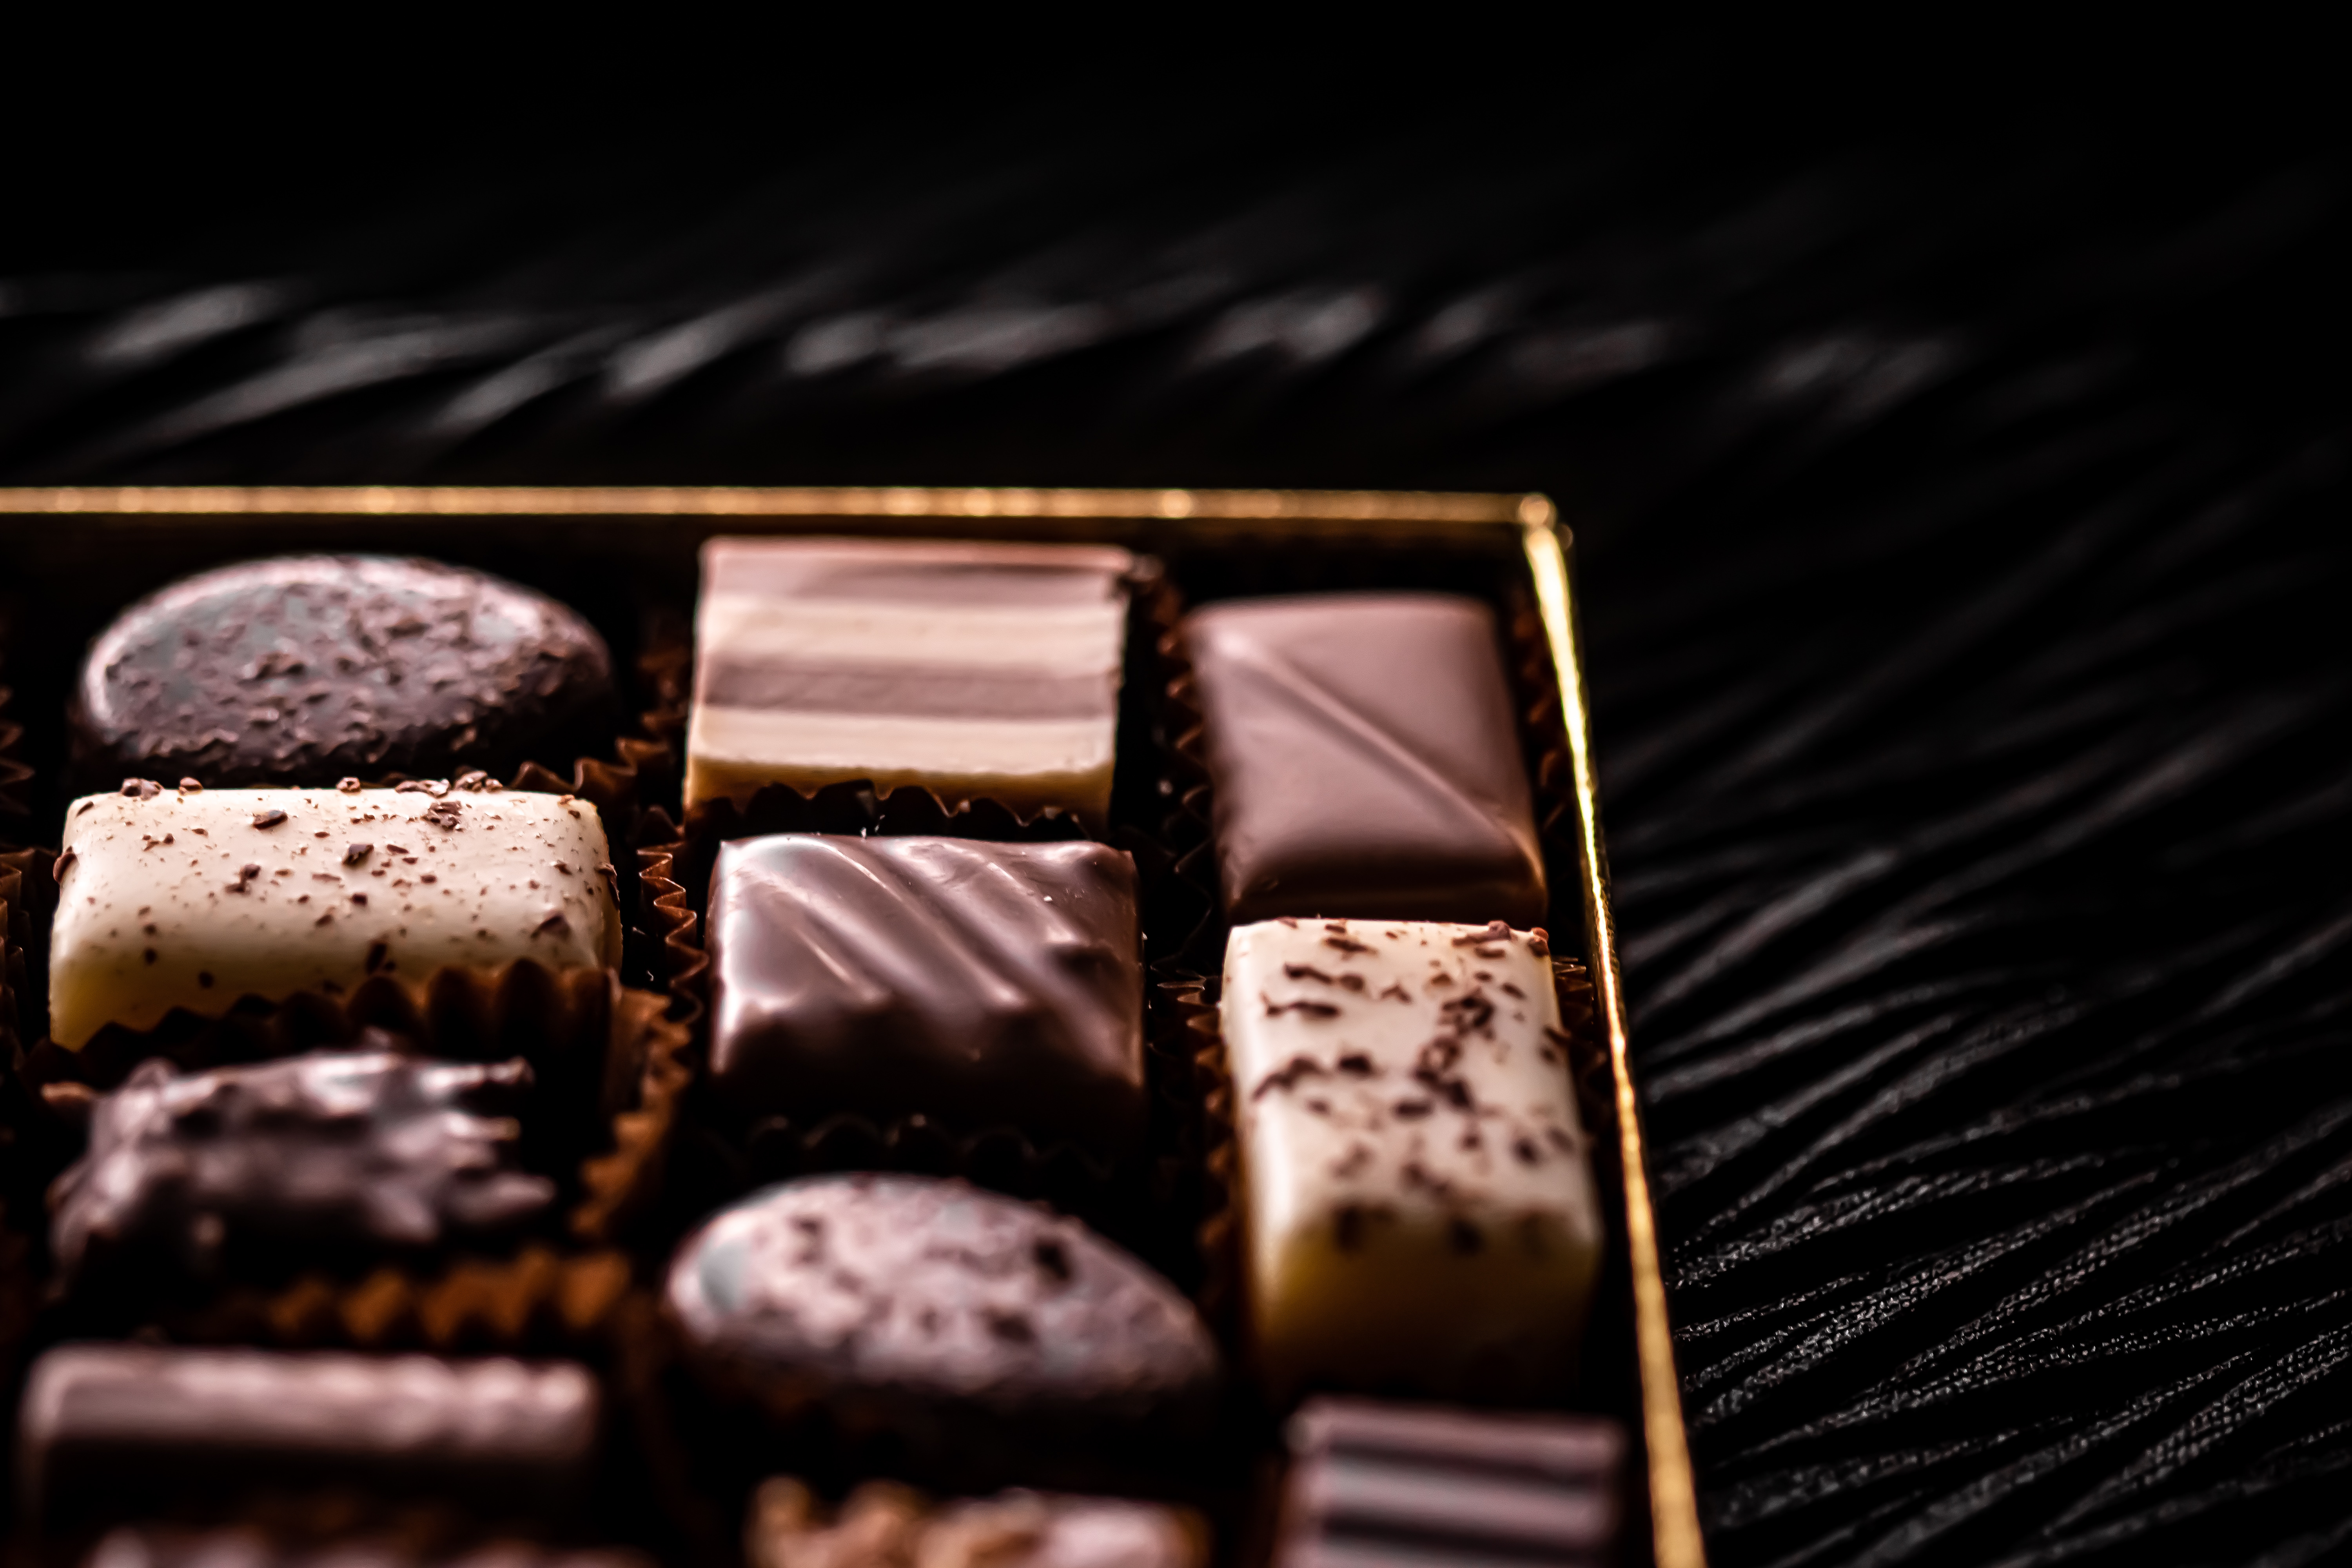 Cession chocolaterie